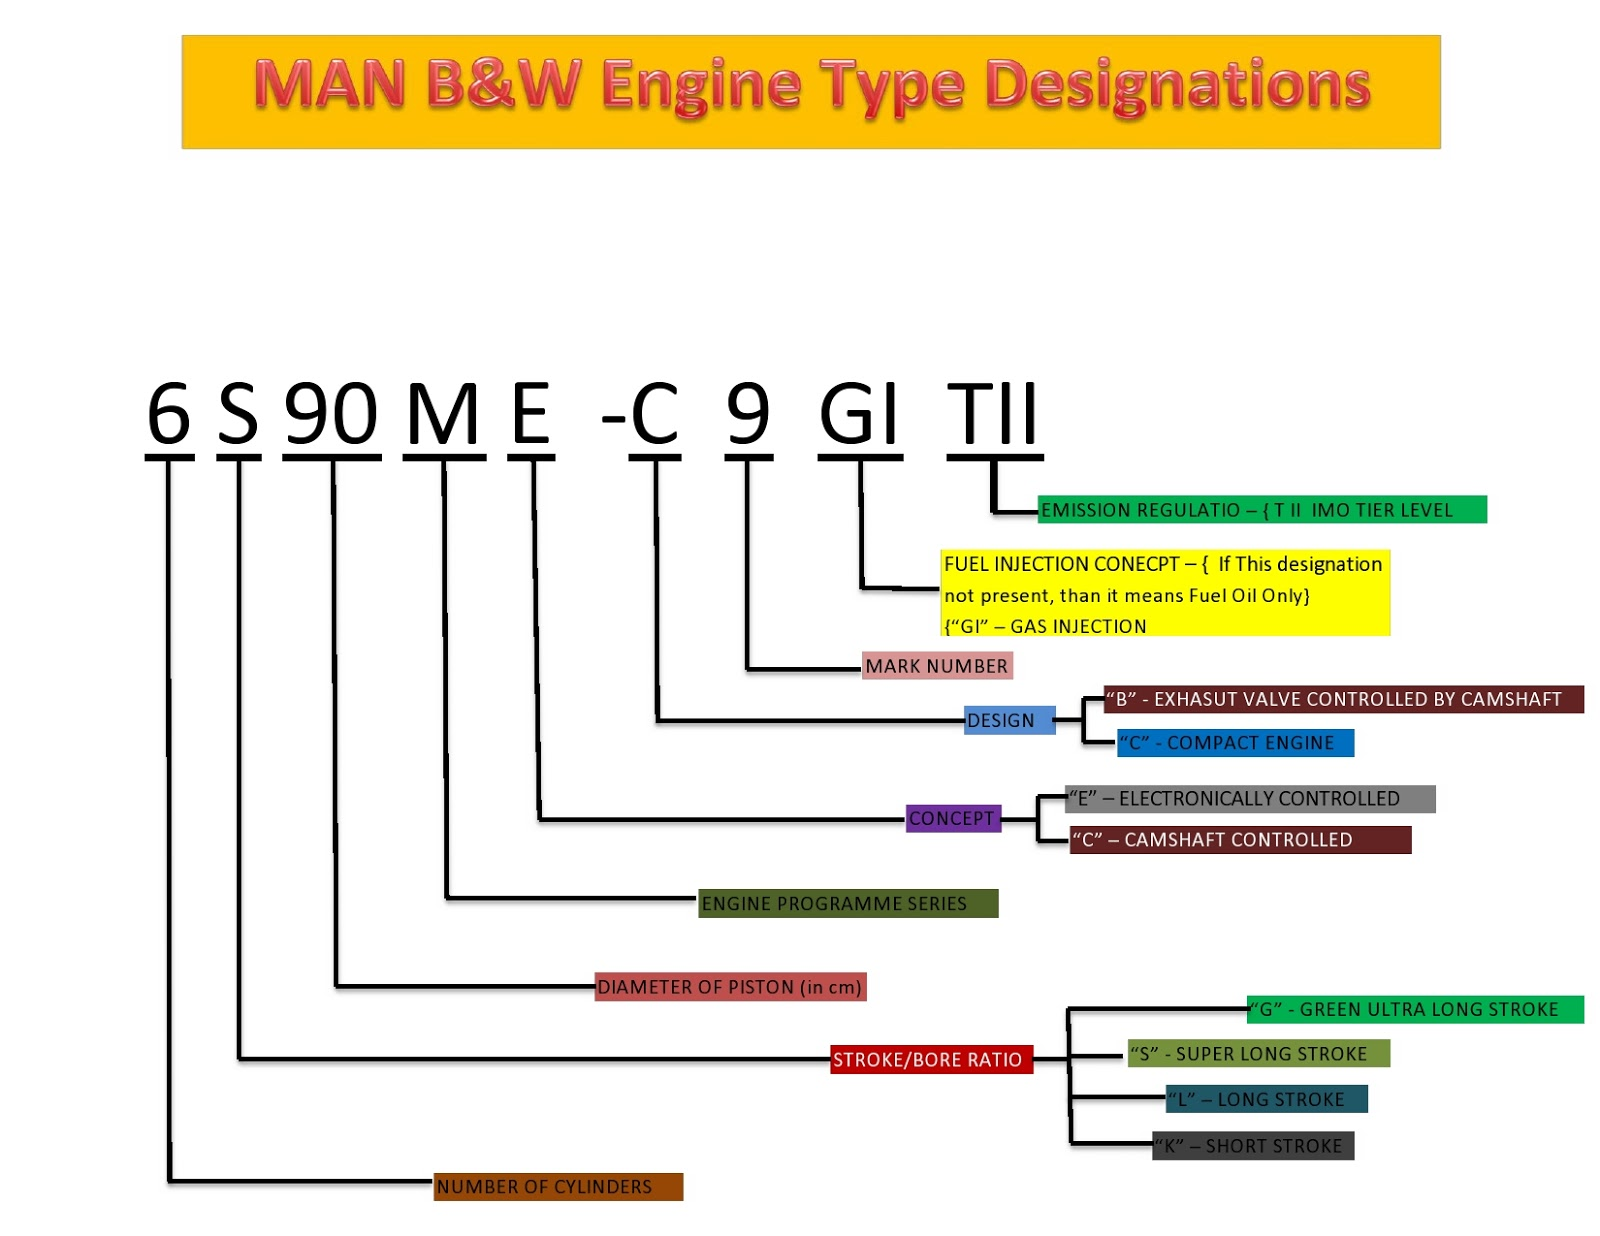 basics of marine engineering engine designations and meaning now that we have learnt about man b w engines lets now take a look at sulzer engines